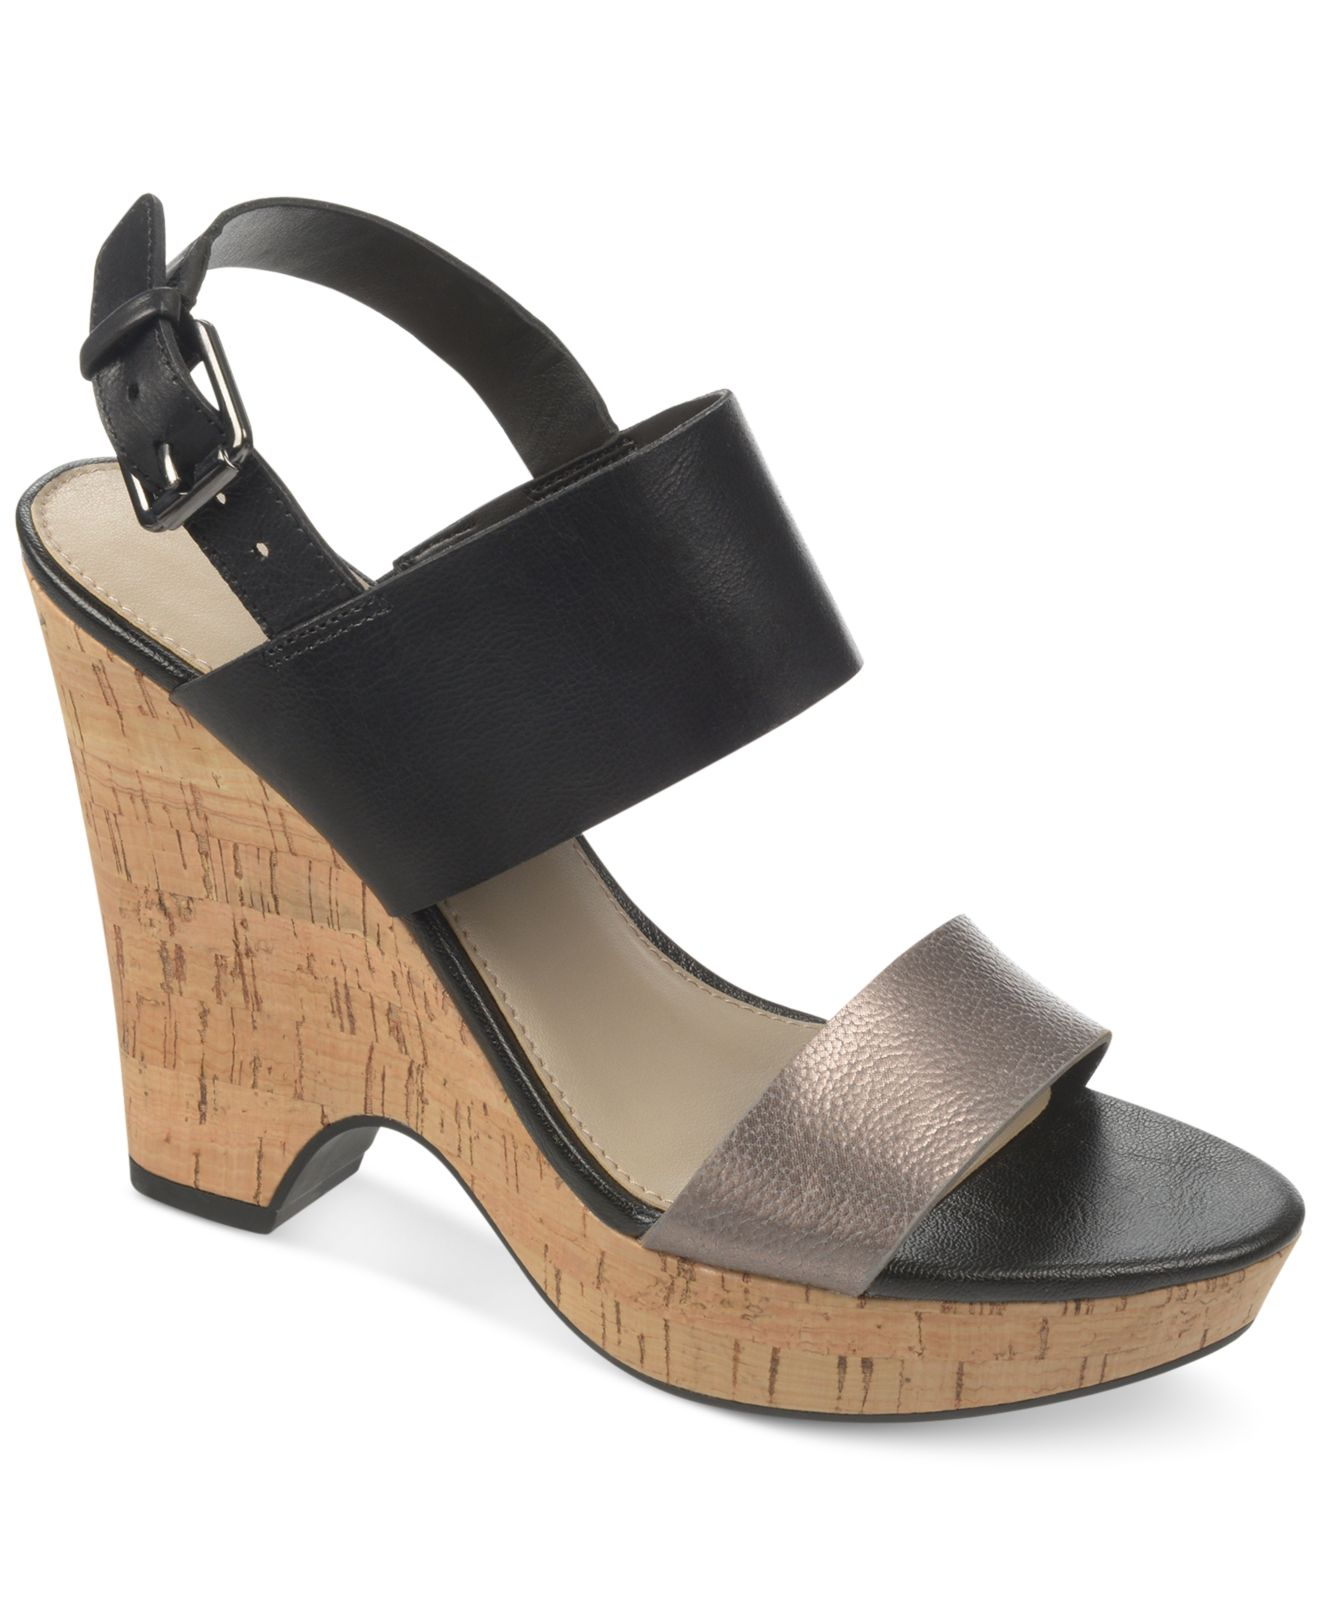 Franco Sarto Women's Davey Ankle Strap Shoe. Sold by Shoebuy. add to compare compare now. Franco Sarto Women's Darlis 2 D'Orsay Shoe. Sold by Shoebuy. add to compare compare now. $ $ Franco Sarto Women's Nolan Tailored Slip-on Pump,Black, M. Sold by ErgodE.